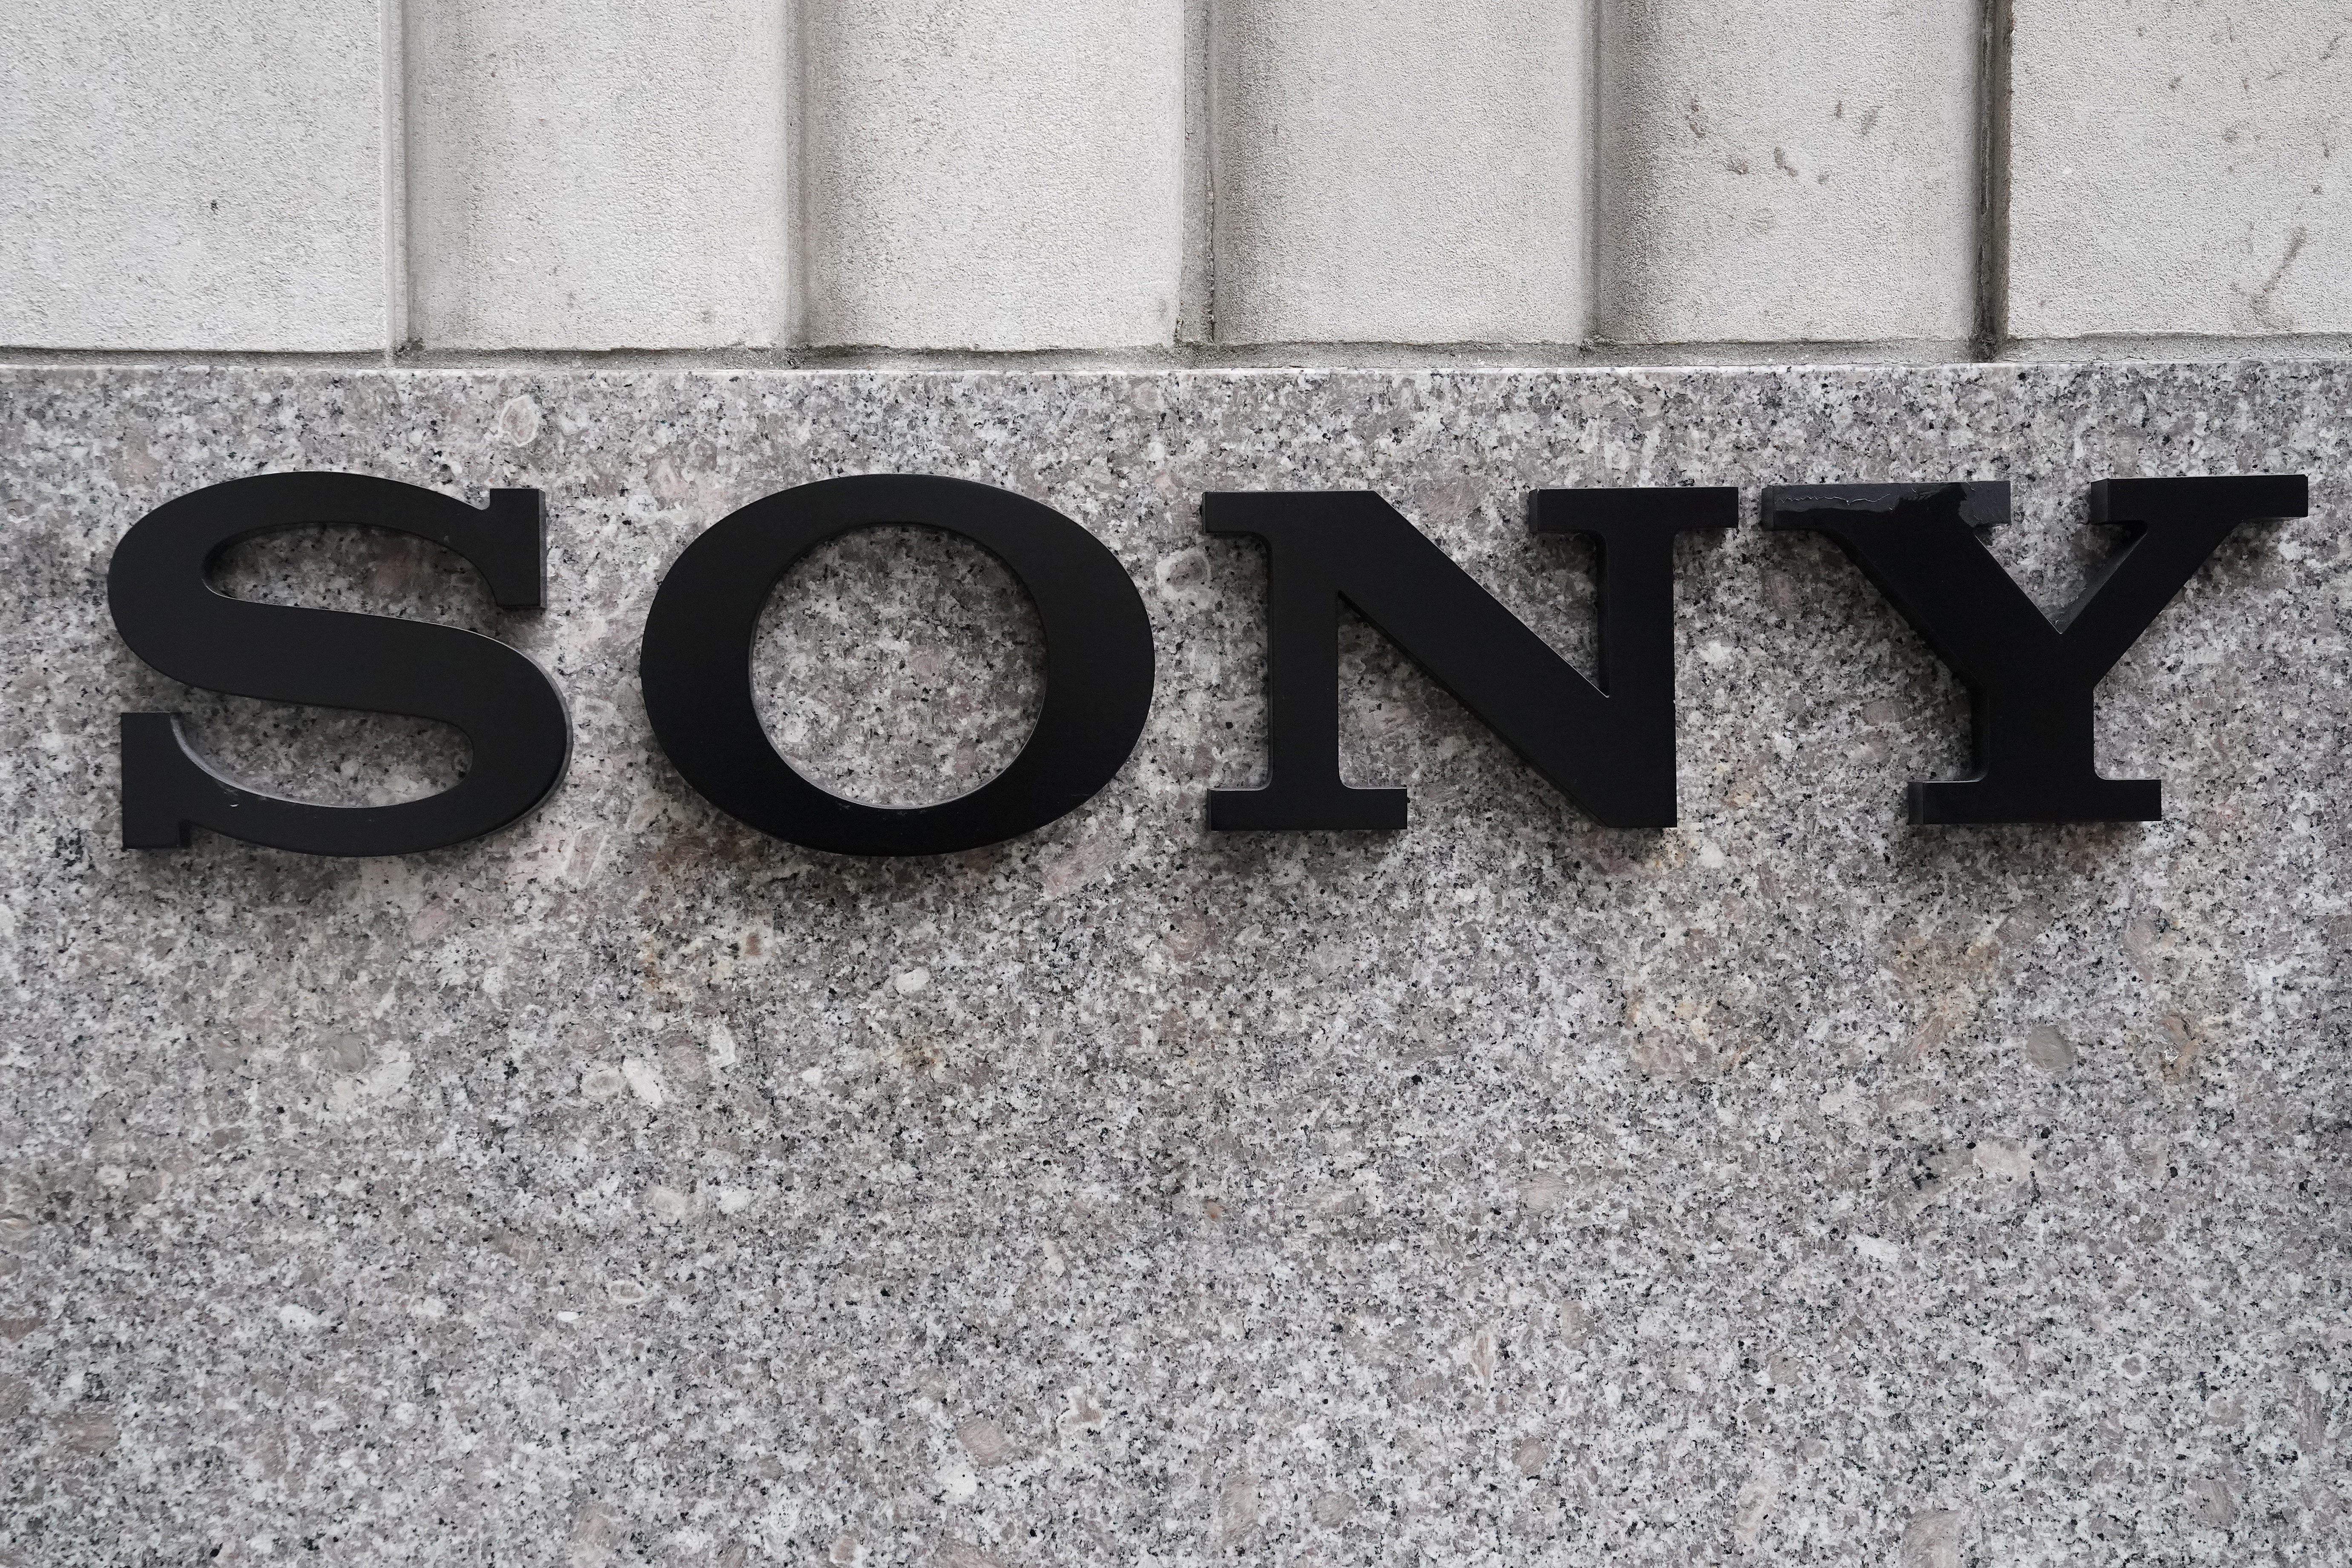 The Sony logo is seen on a building in the Manhattan borough of New York City, New York, U.S., January 16, 2019. REUTERS/Carlo Allegri